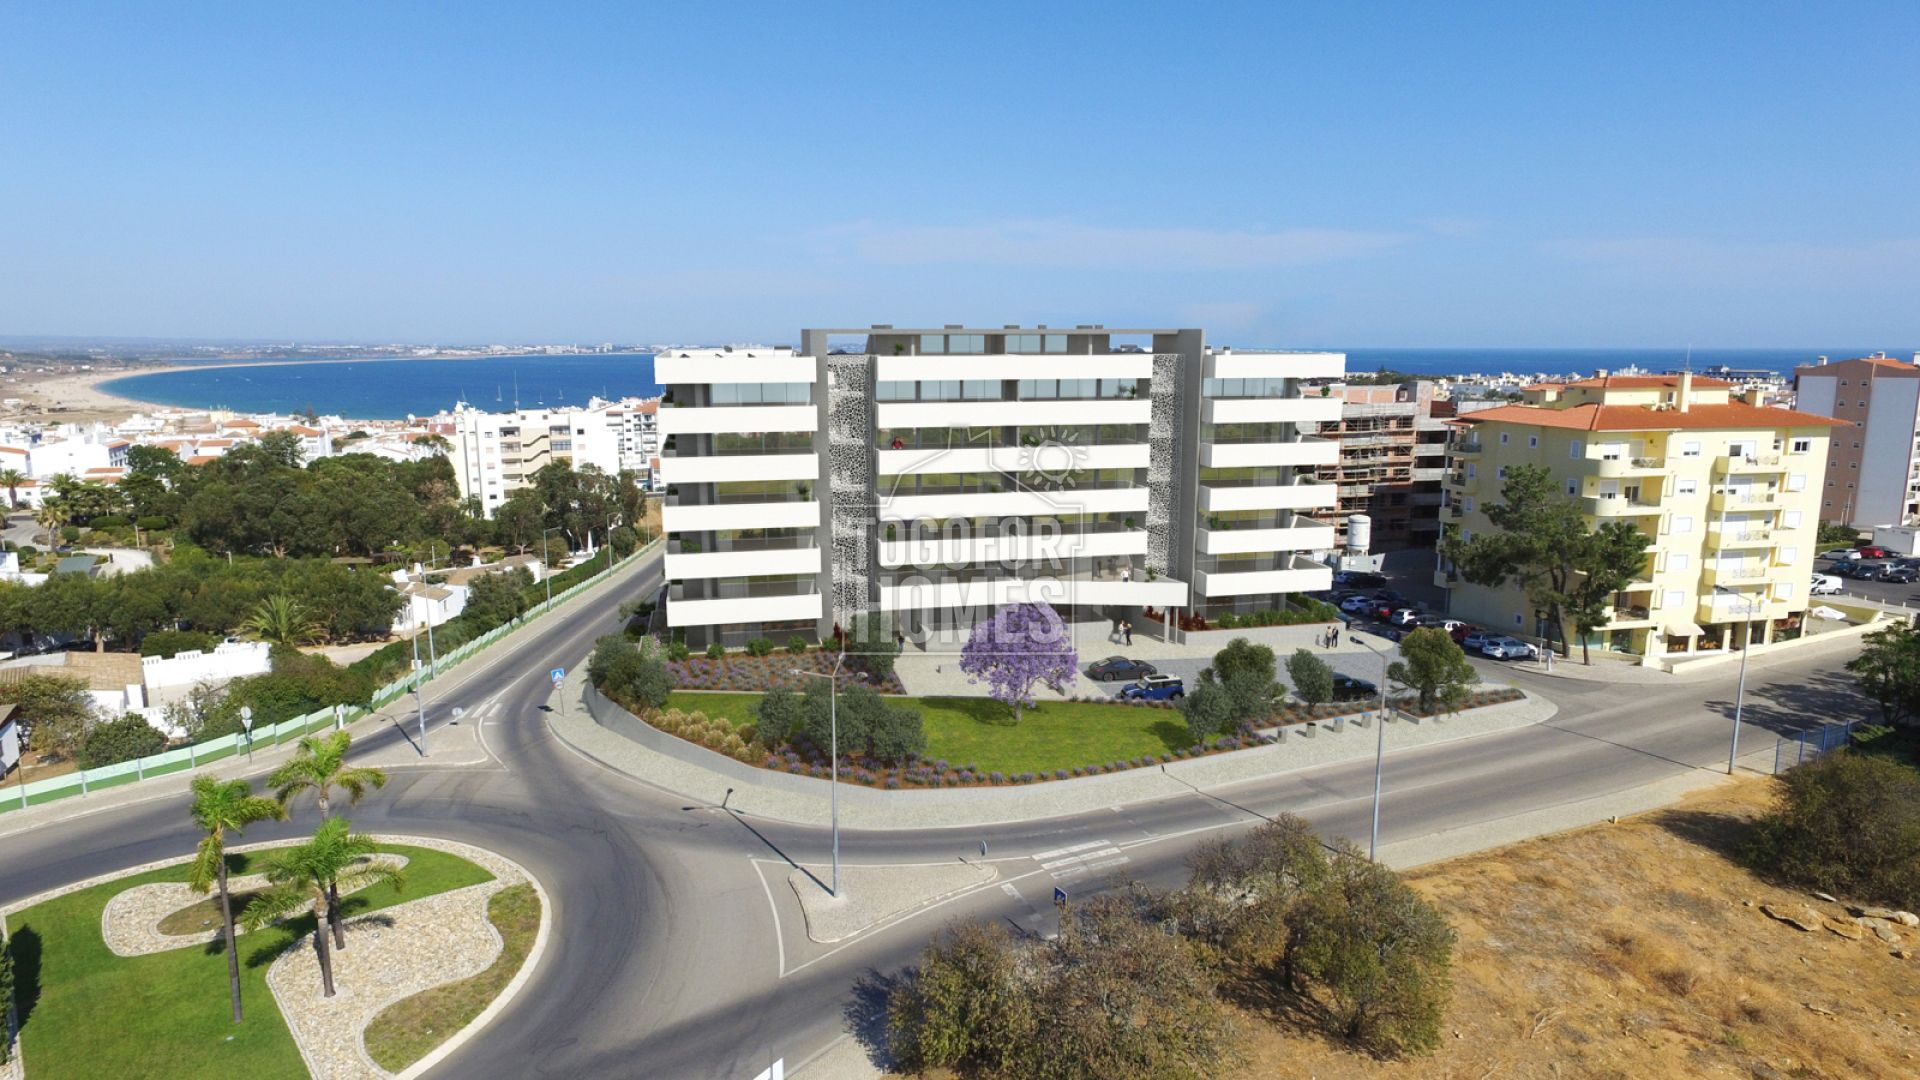 LG1199 -Off-plan 2 bedroom apartments with communal pool and sea views, Lagos, West Algarve